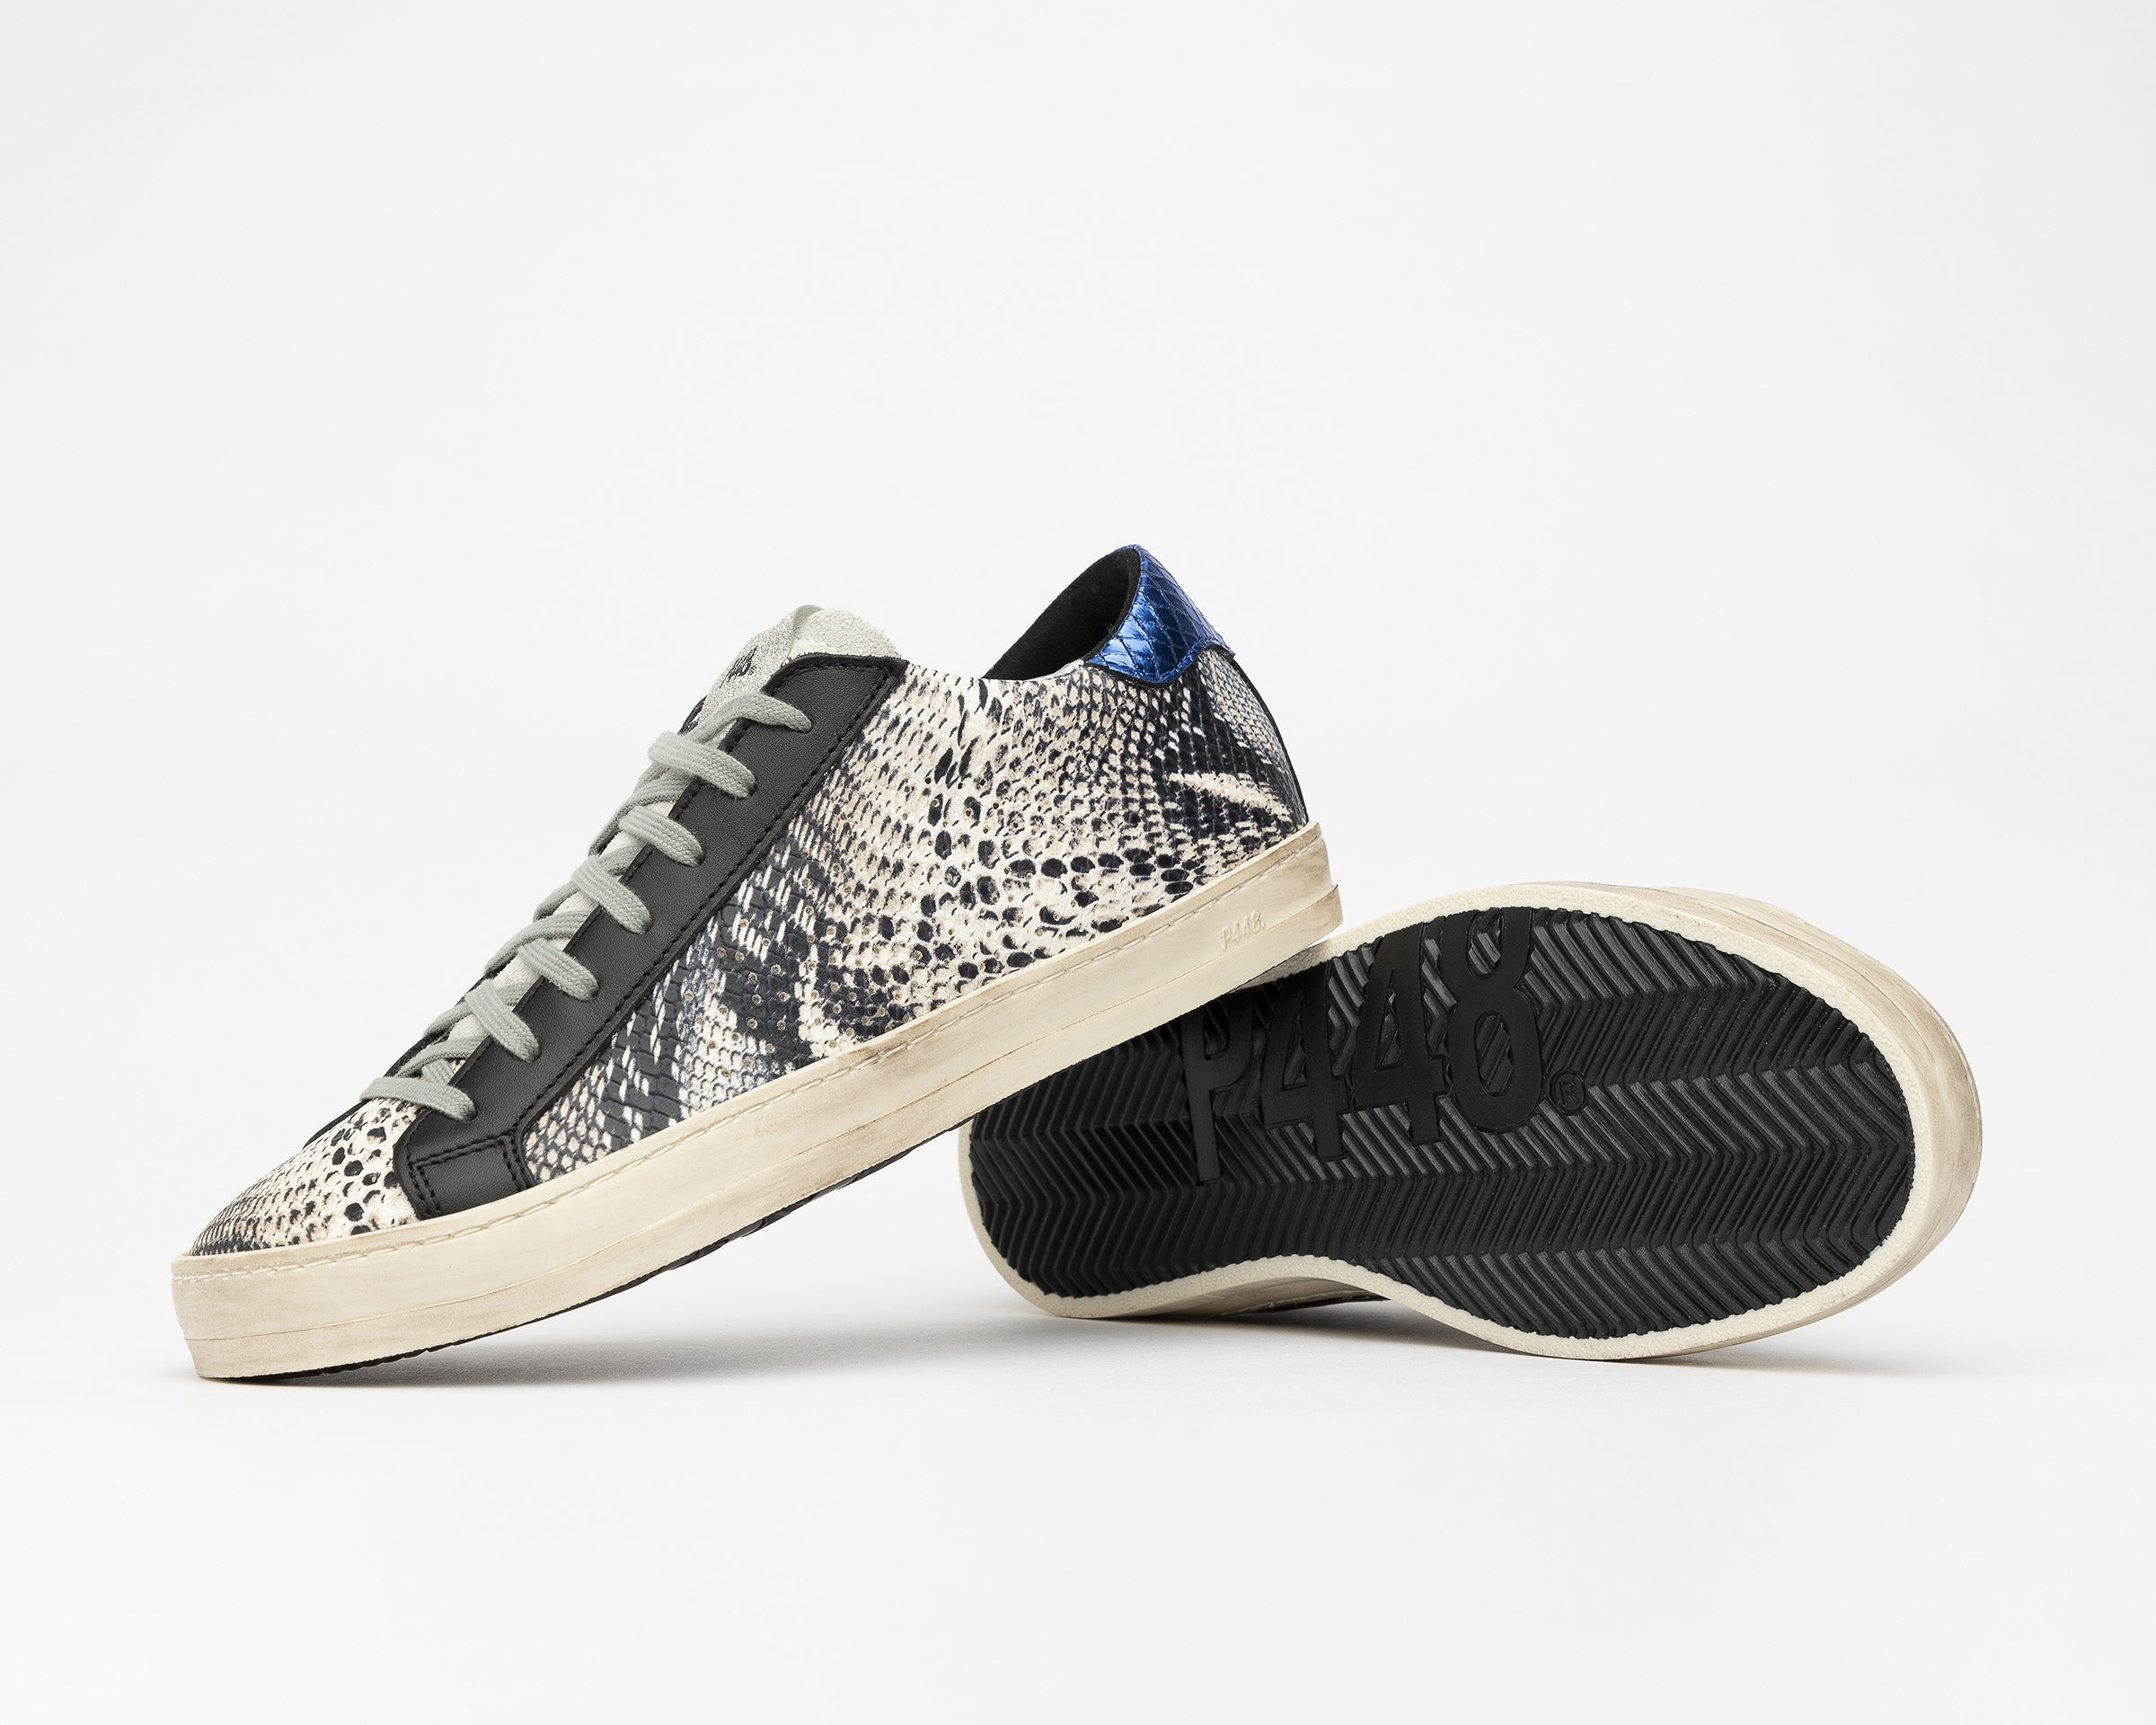 John Low-Top Sneaker in Twister Python - Detail 1